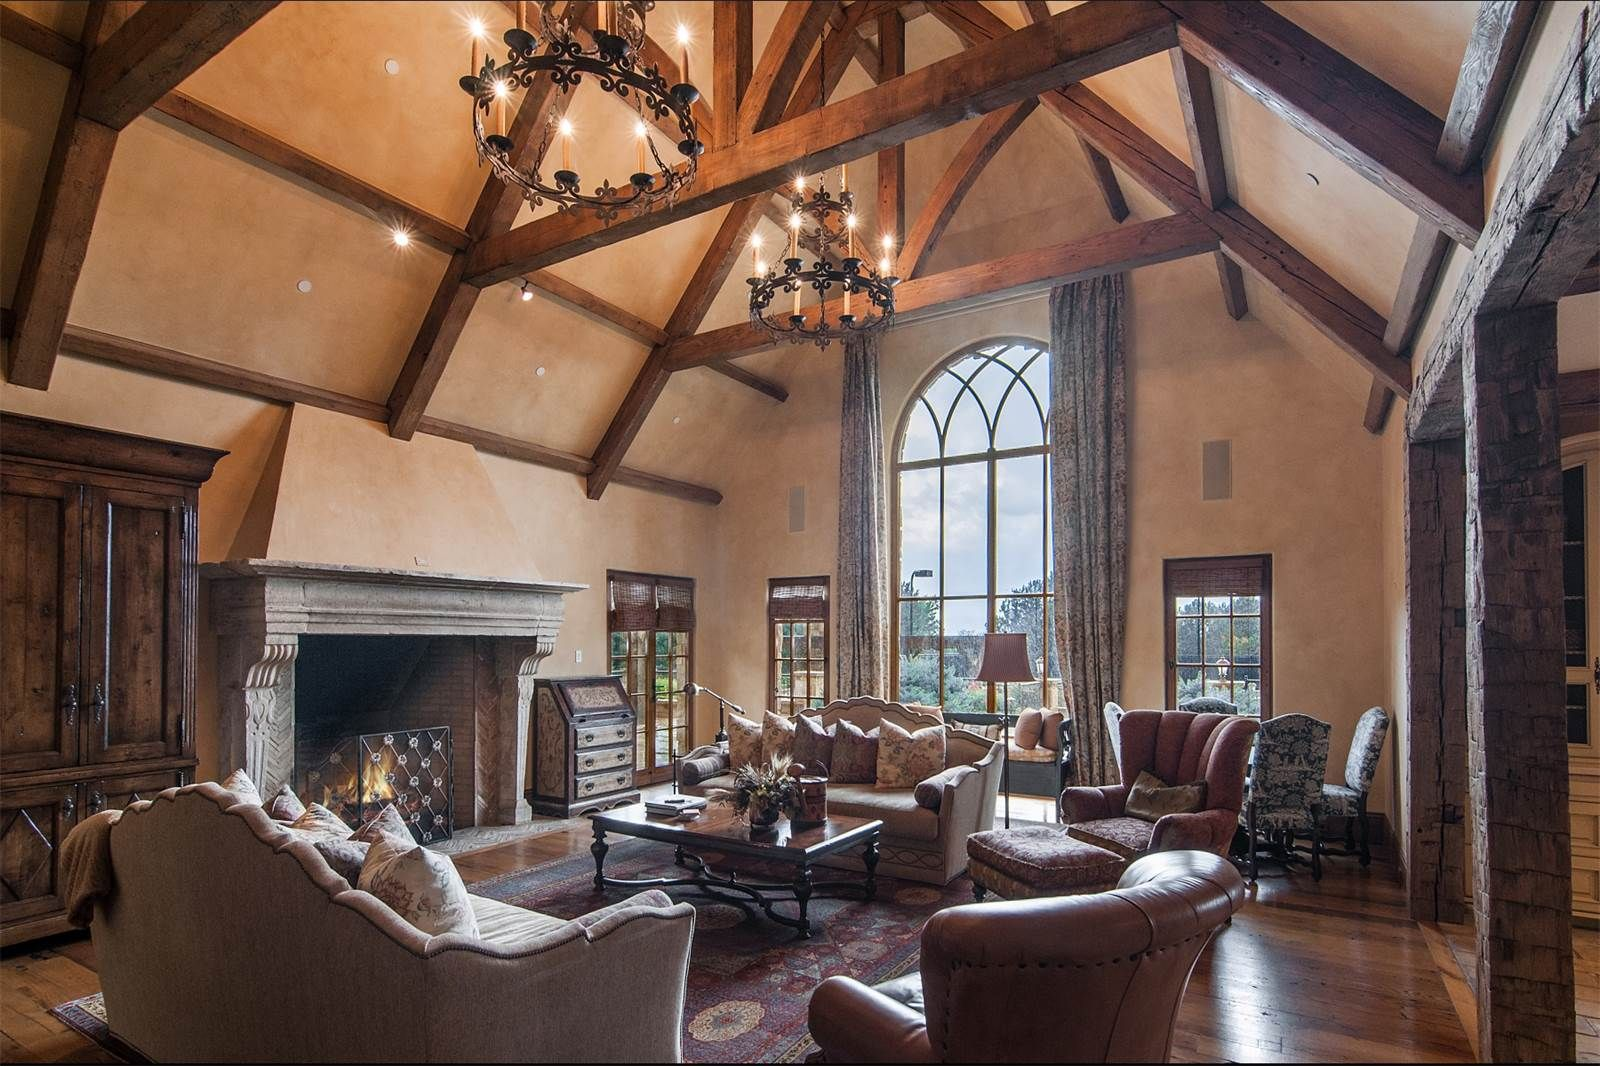 Vaulted Ceiling And Wood Beams In Denver 1600 X 1066 By Bullets Tml In Roomporn I Cathedral Ceiling Living Room Living Room Ceiling Vaulted Ceiling Decor #vaulted #ceiling #wood #beams #living #room